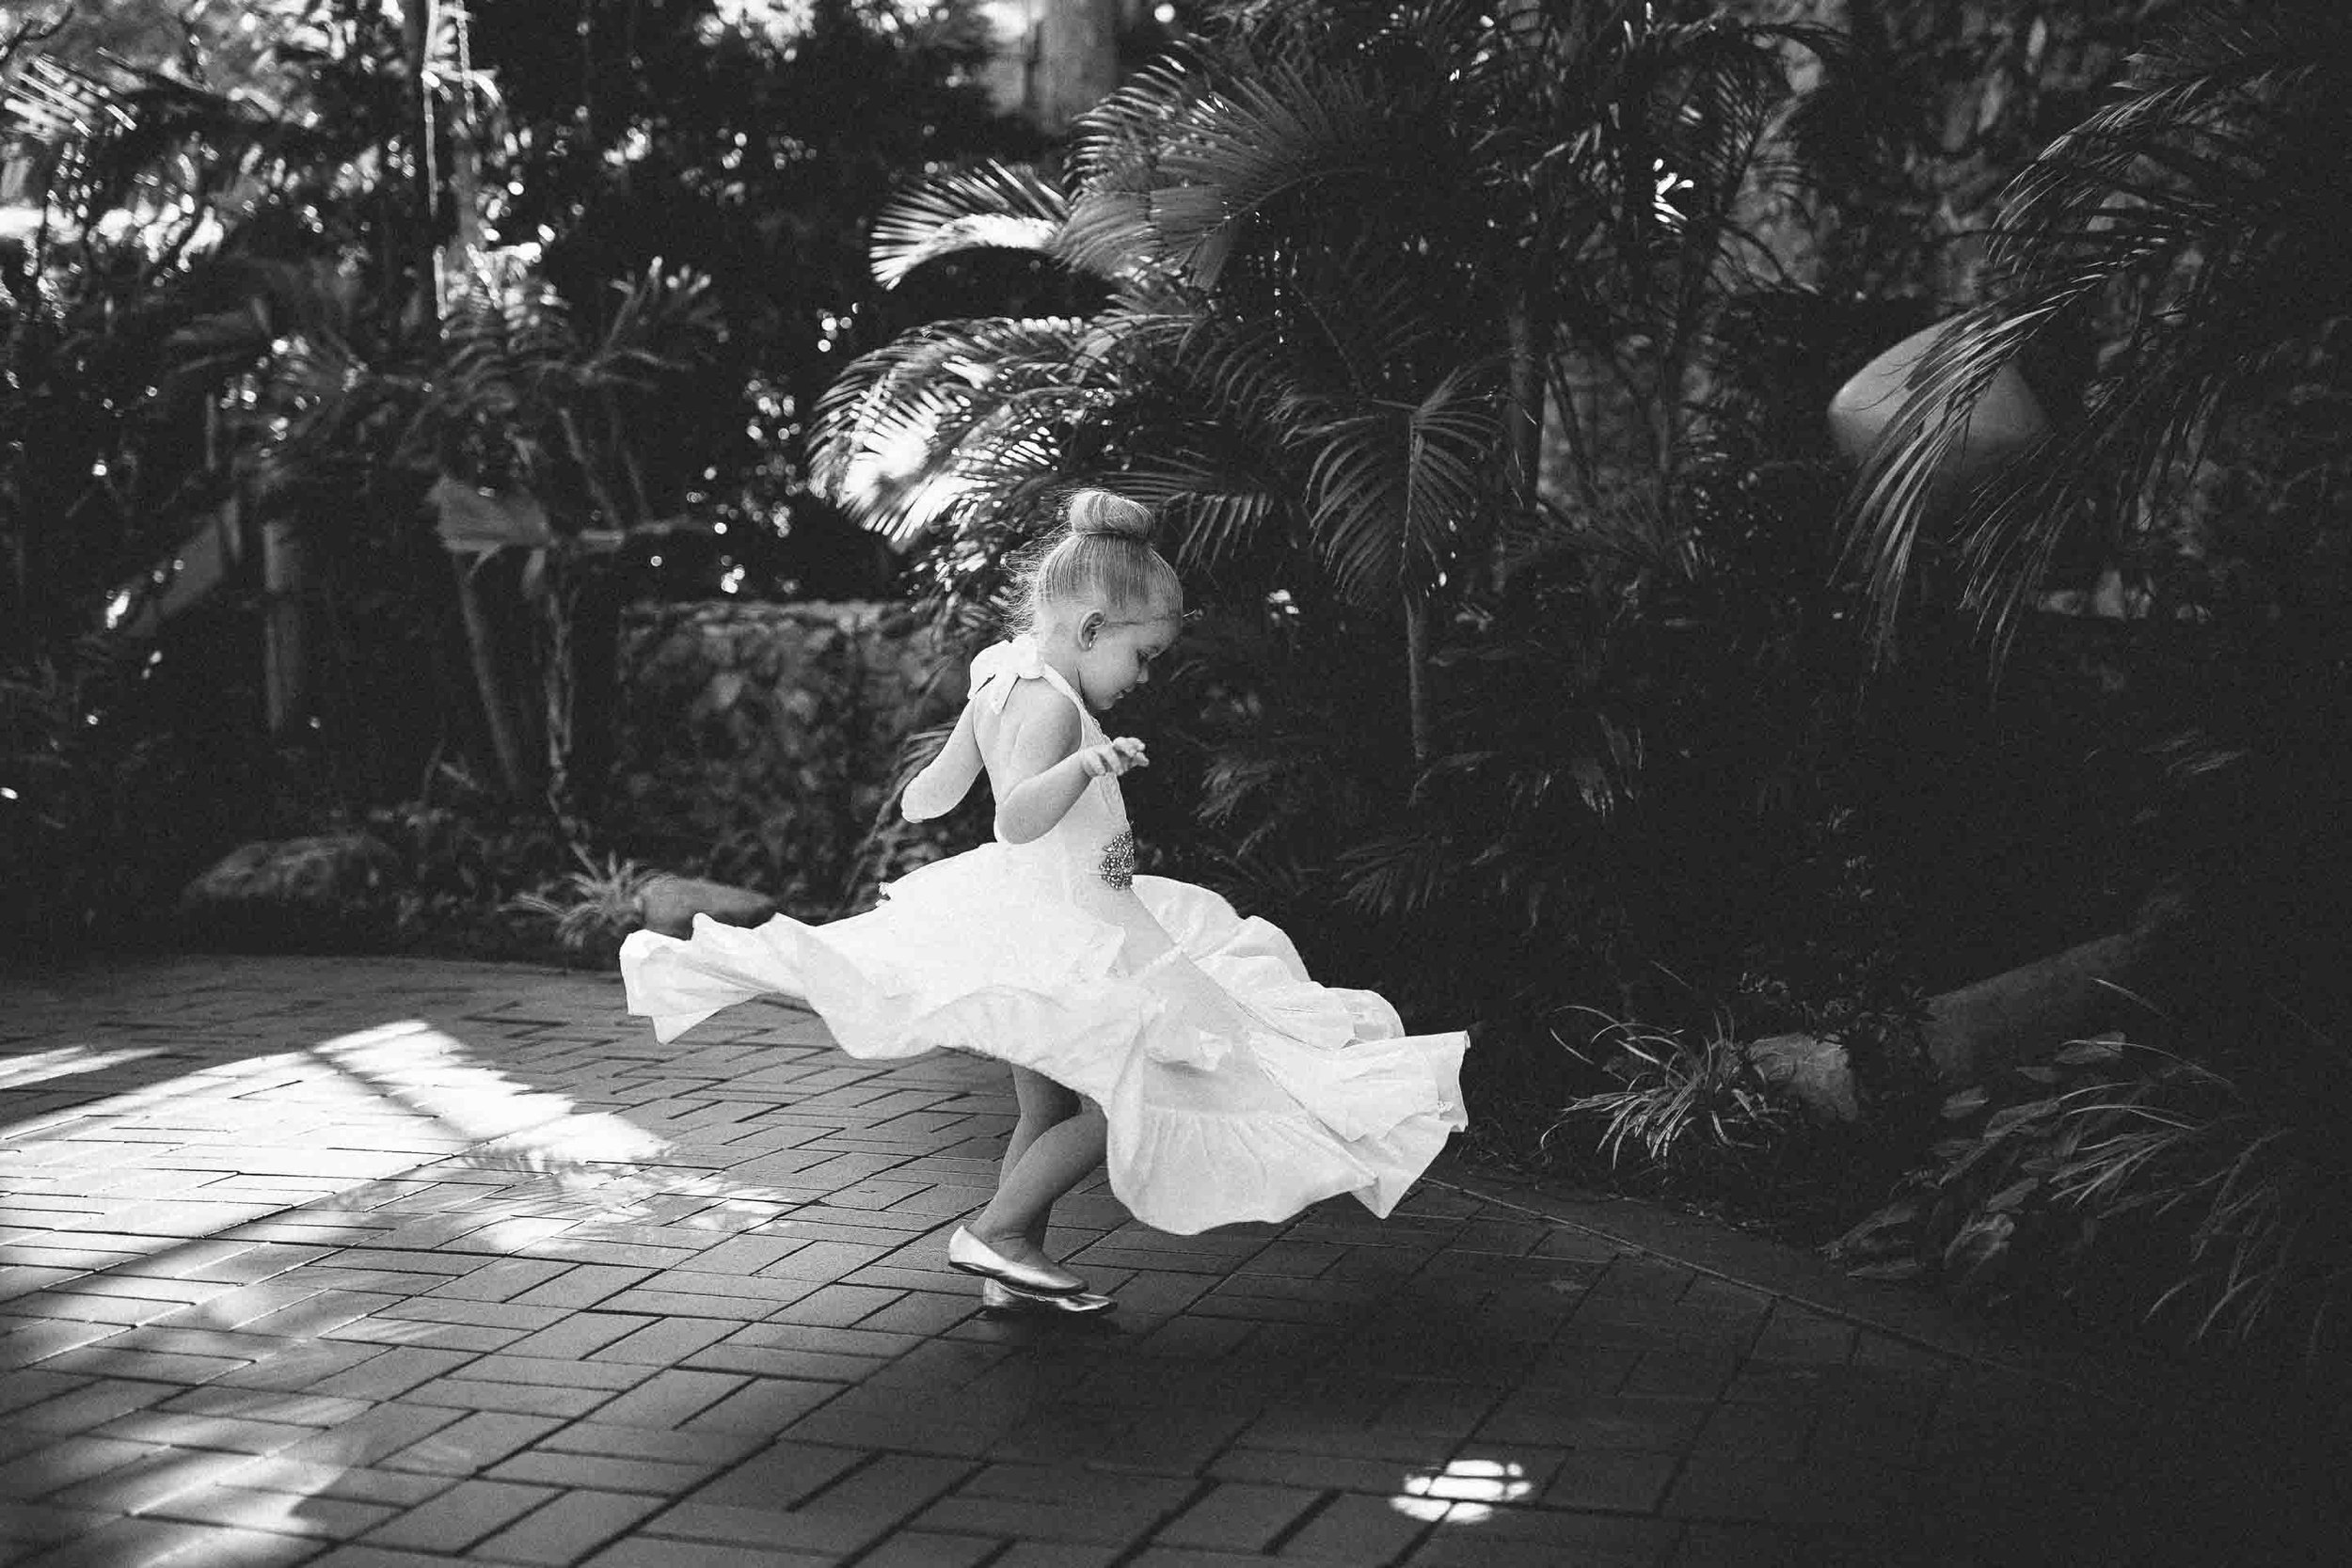 the flower girl spinning around as fast as she can